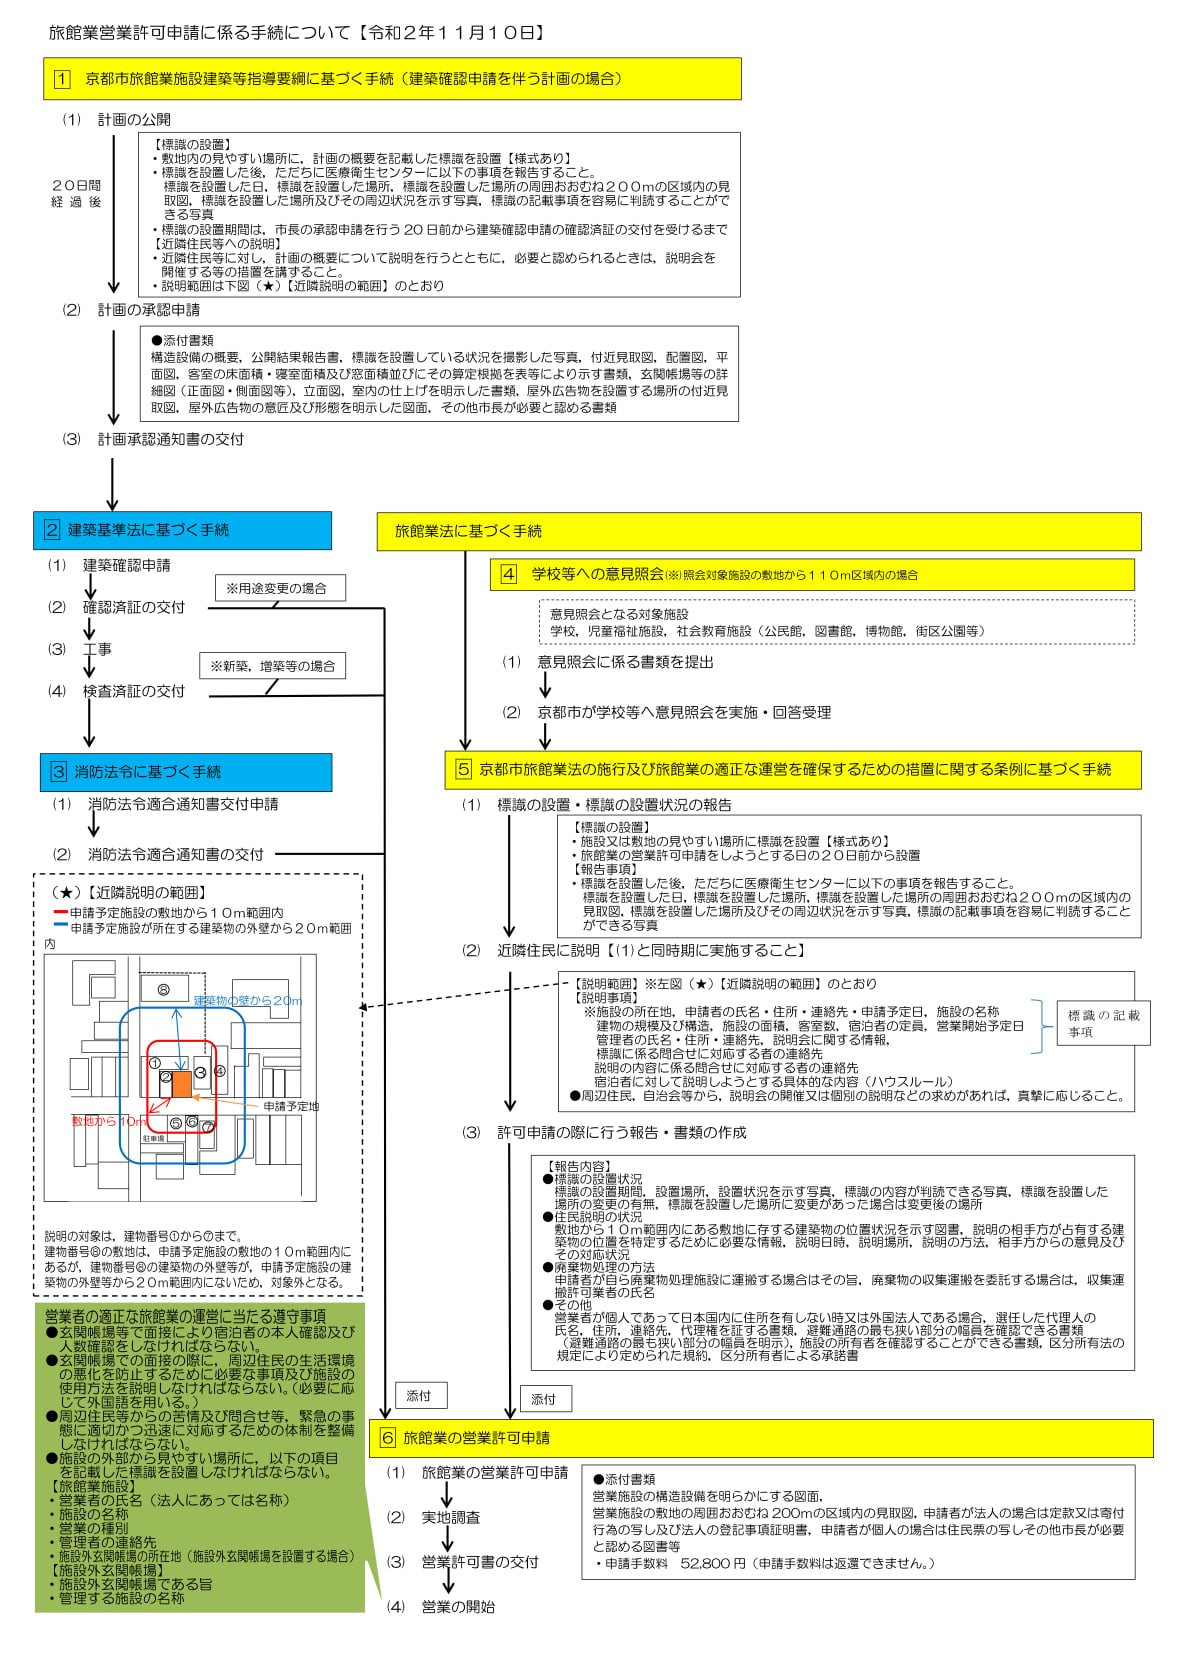 Procedures for Application for a License to Operate a Ryokan (Guesthouse/Airbnb) Business [November 10, 2020]